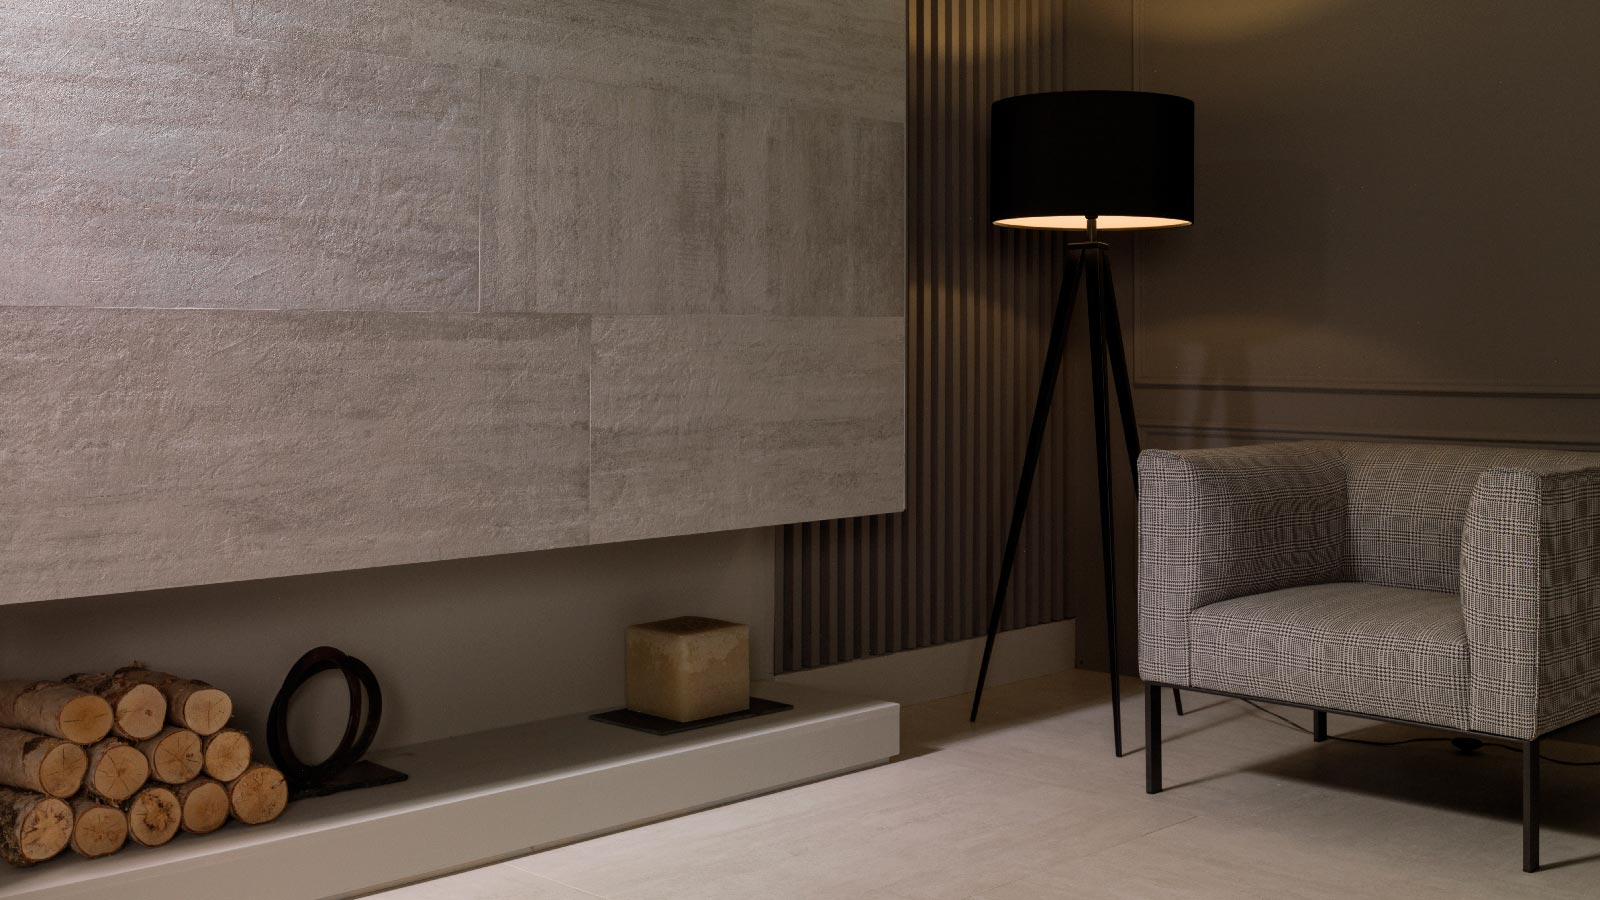 A sand and stone way with the Nantes series from Porcelanosa